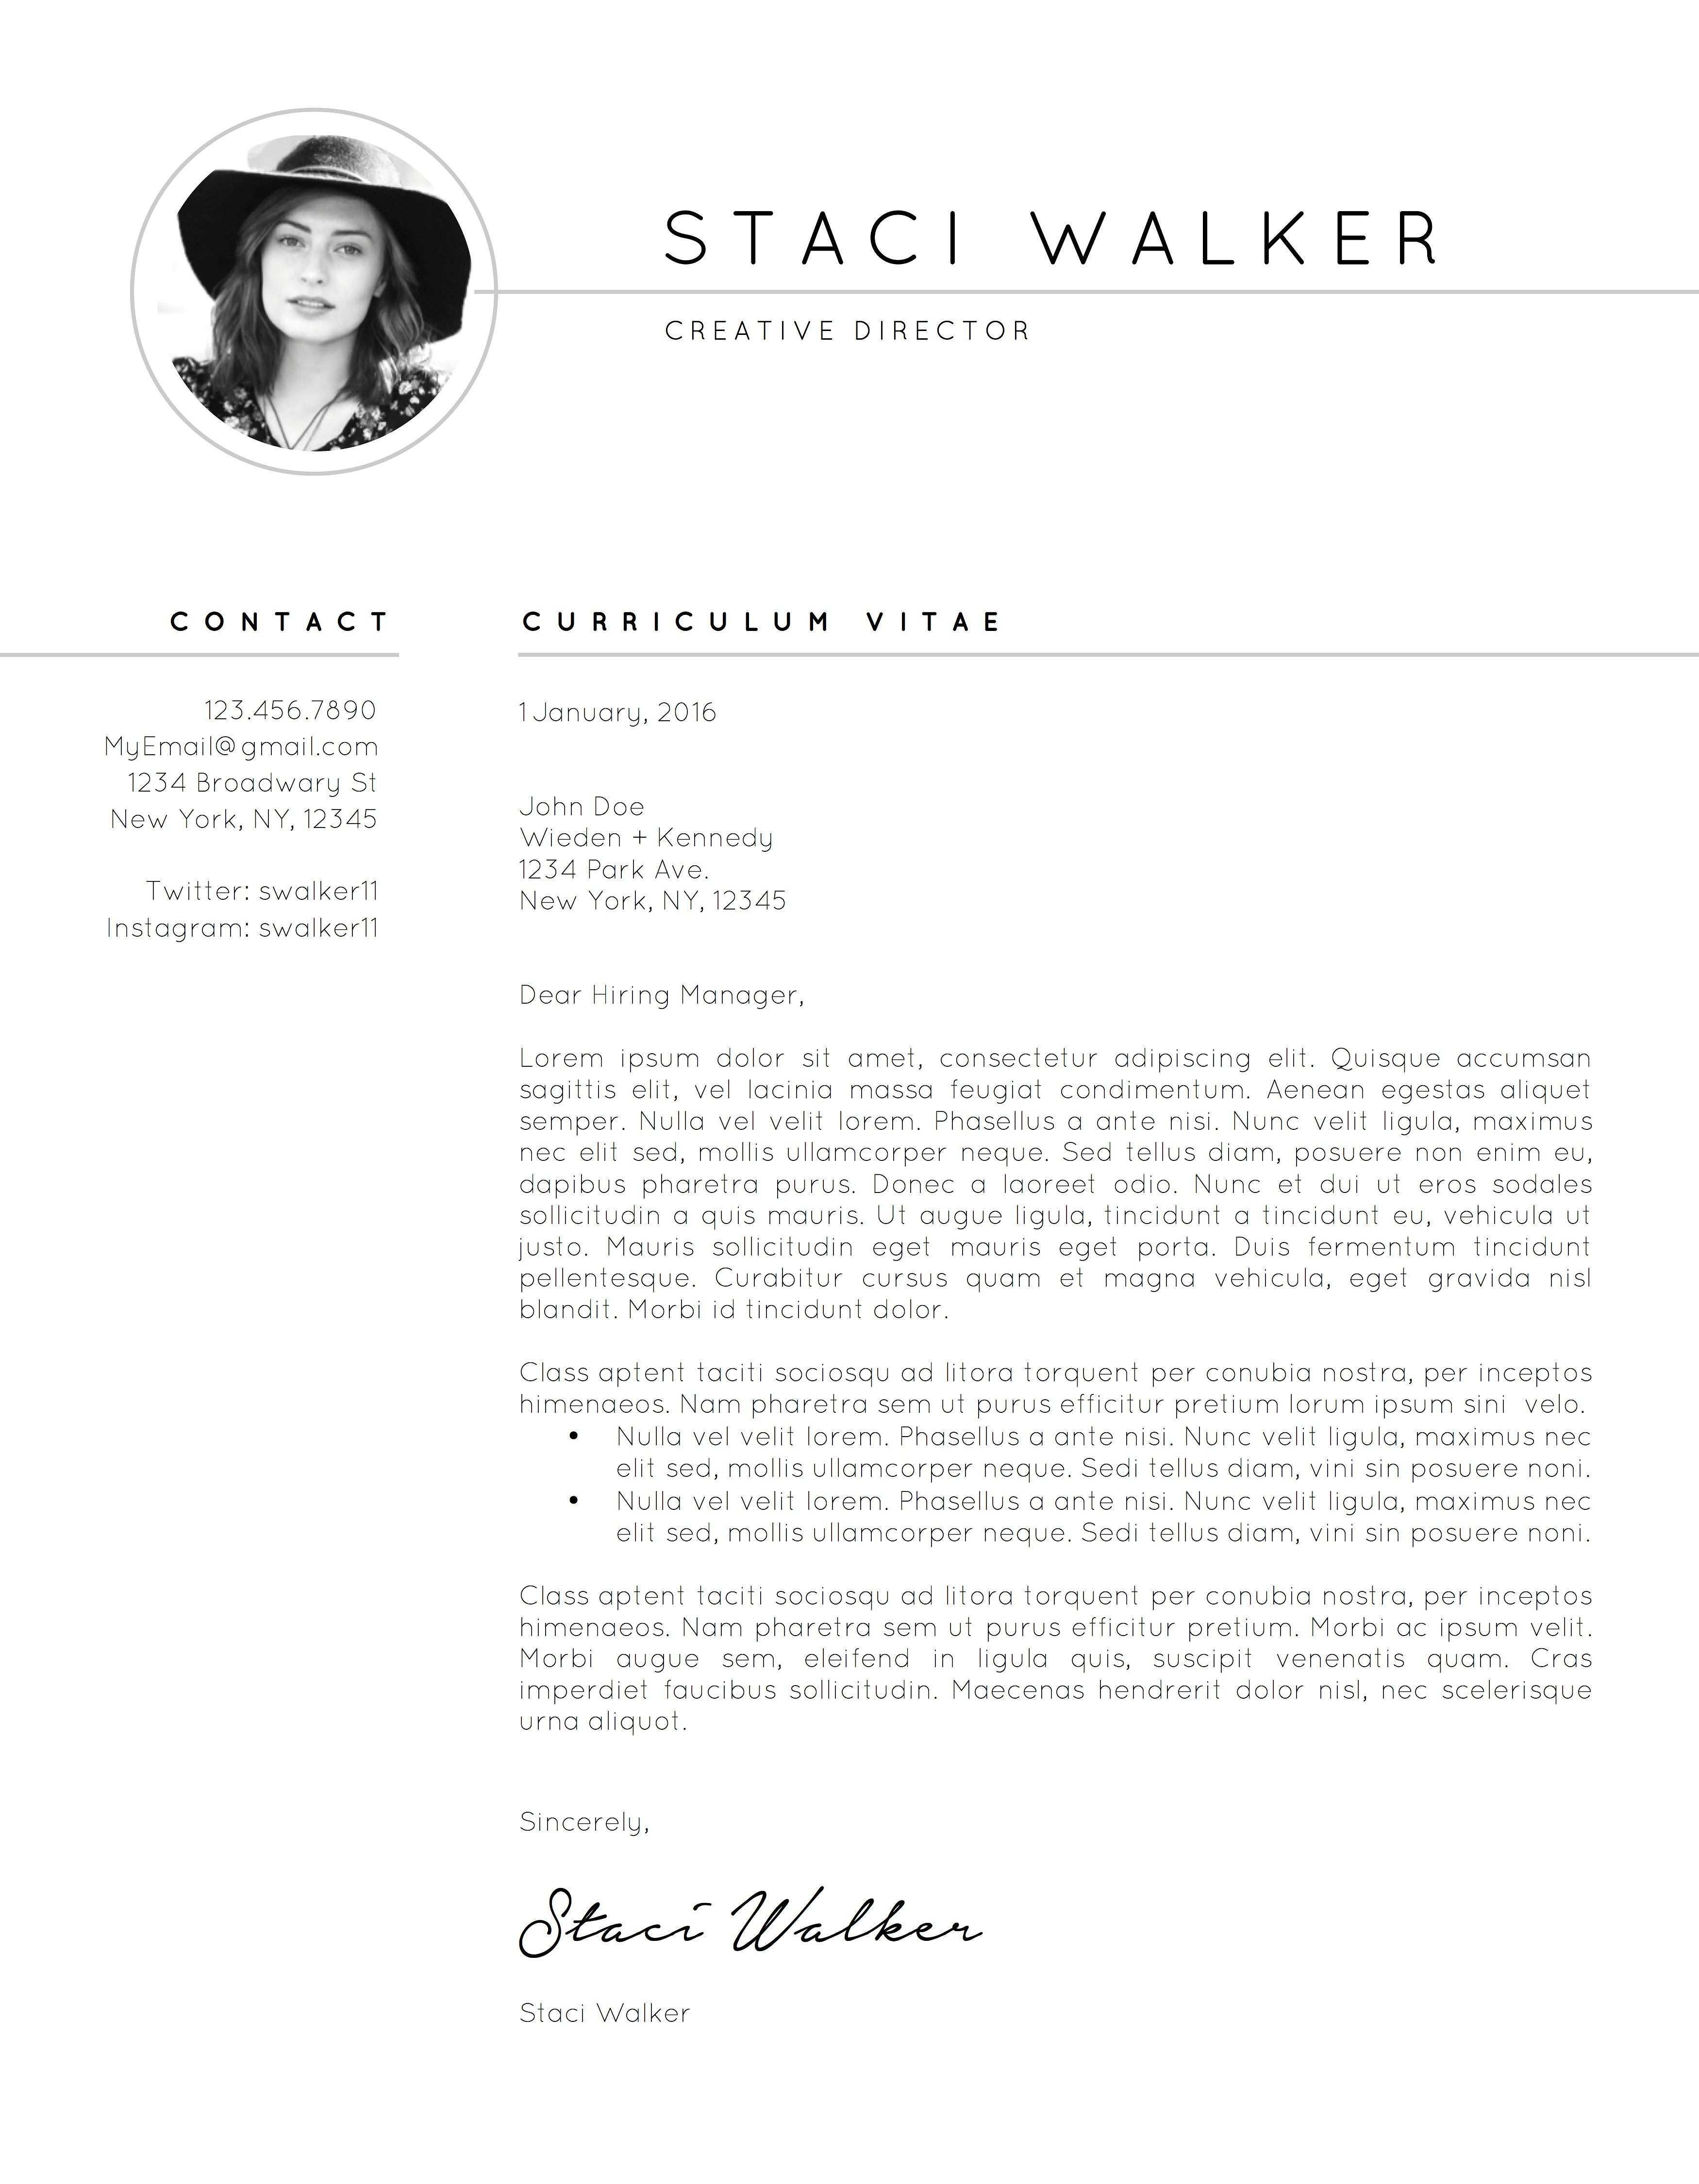 Resume Template Cv Cover Letter By The Creative Resume On Creativemarket Modern Resume Template Resume Design Template Resume